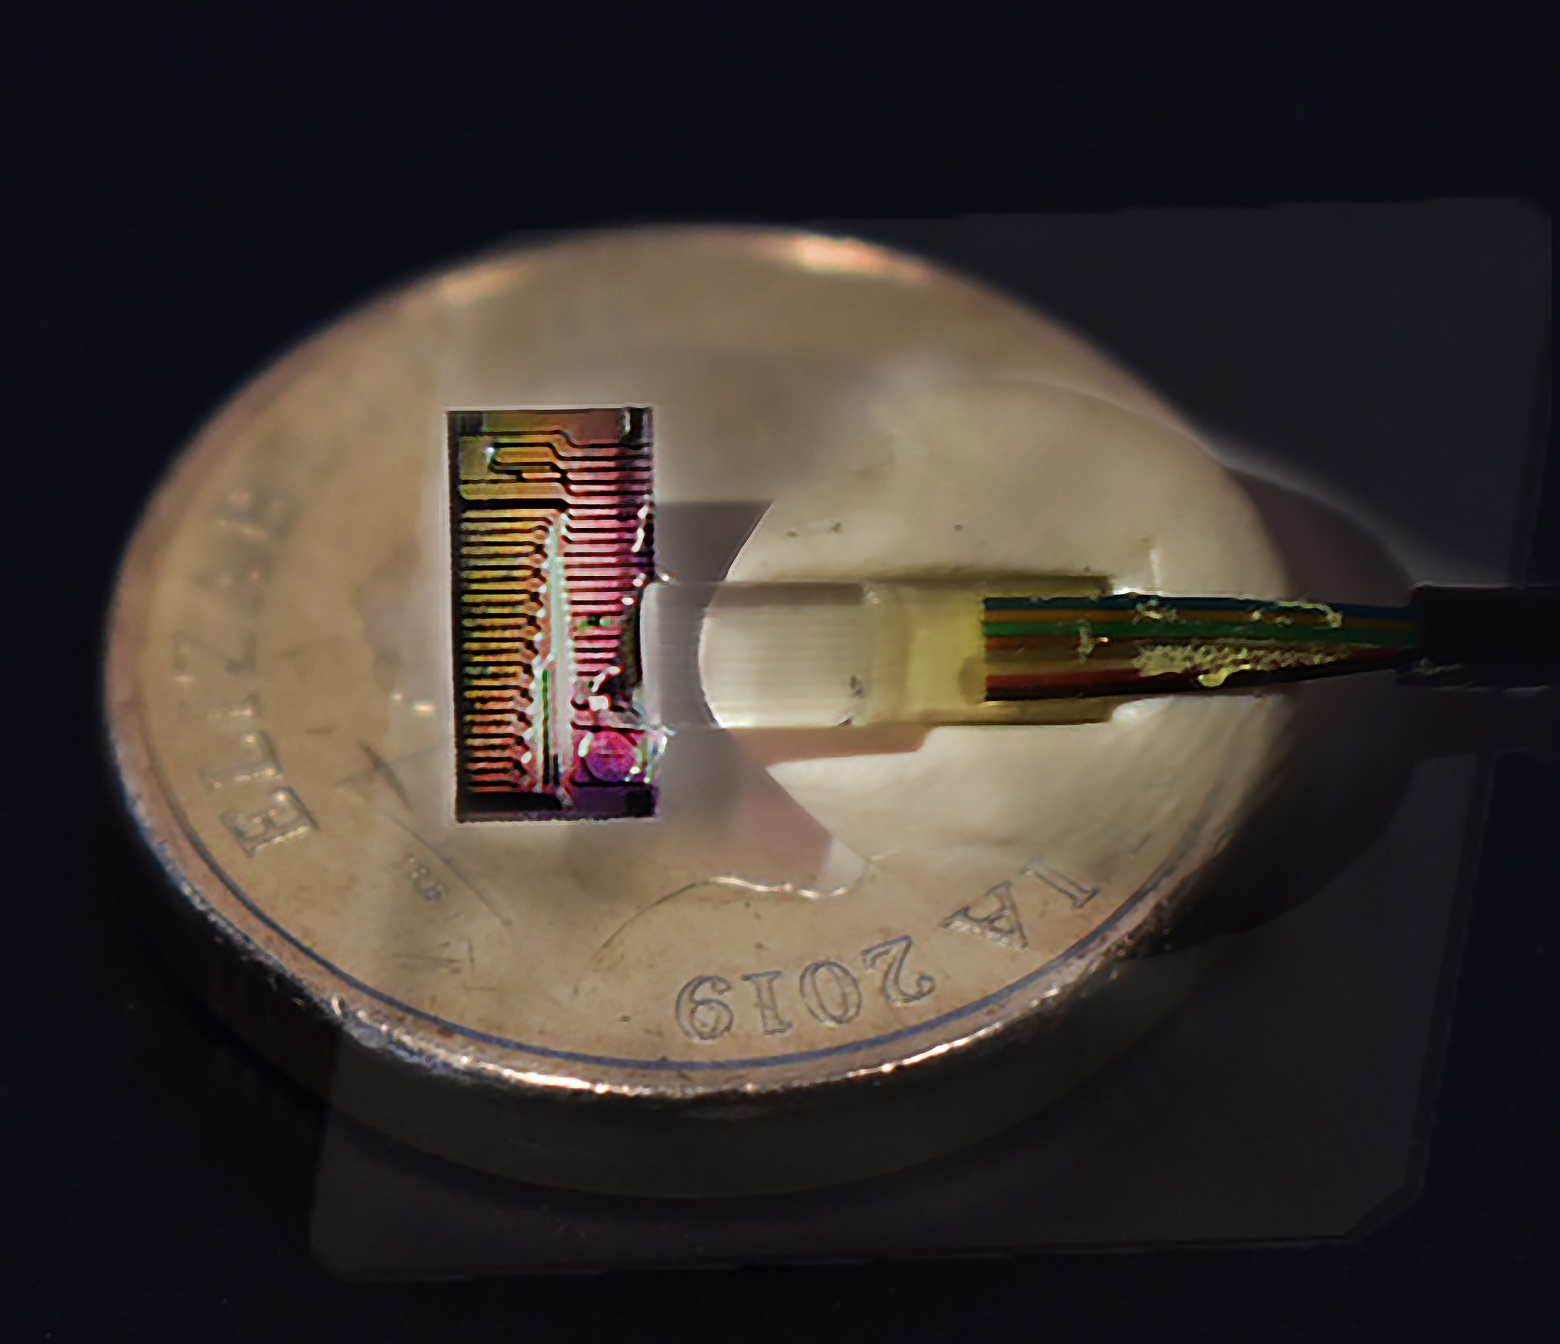 The Micro-Comb device used to record the record internet data speed